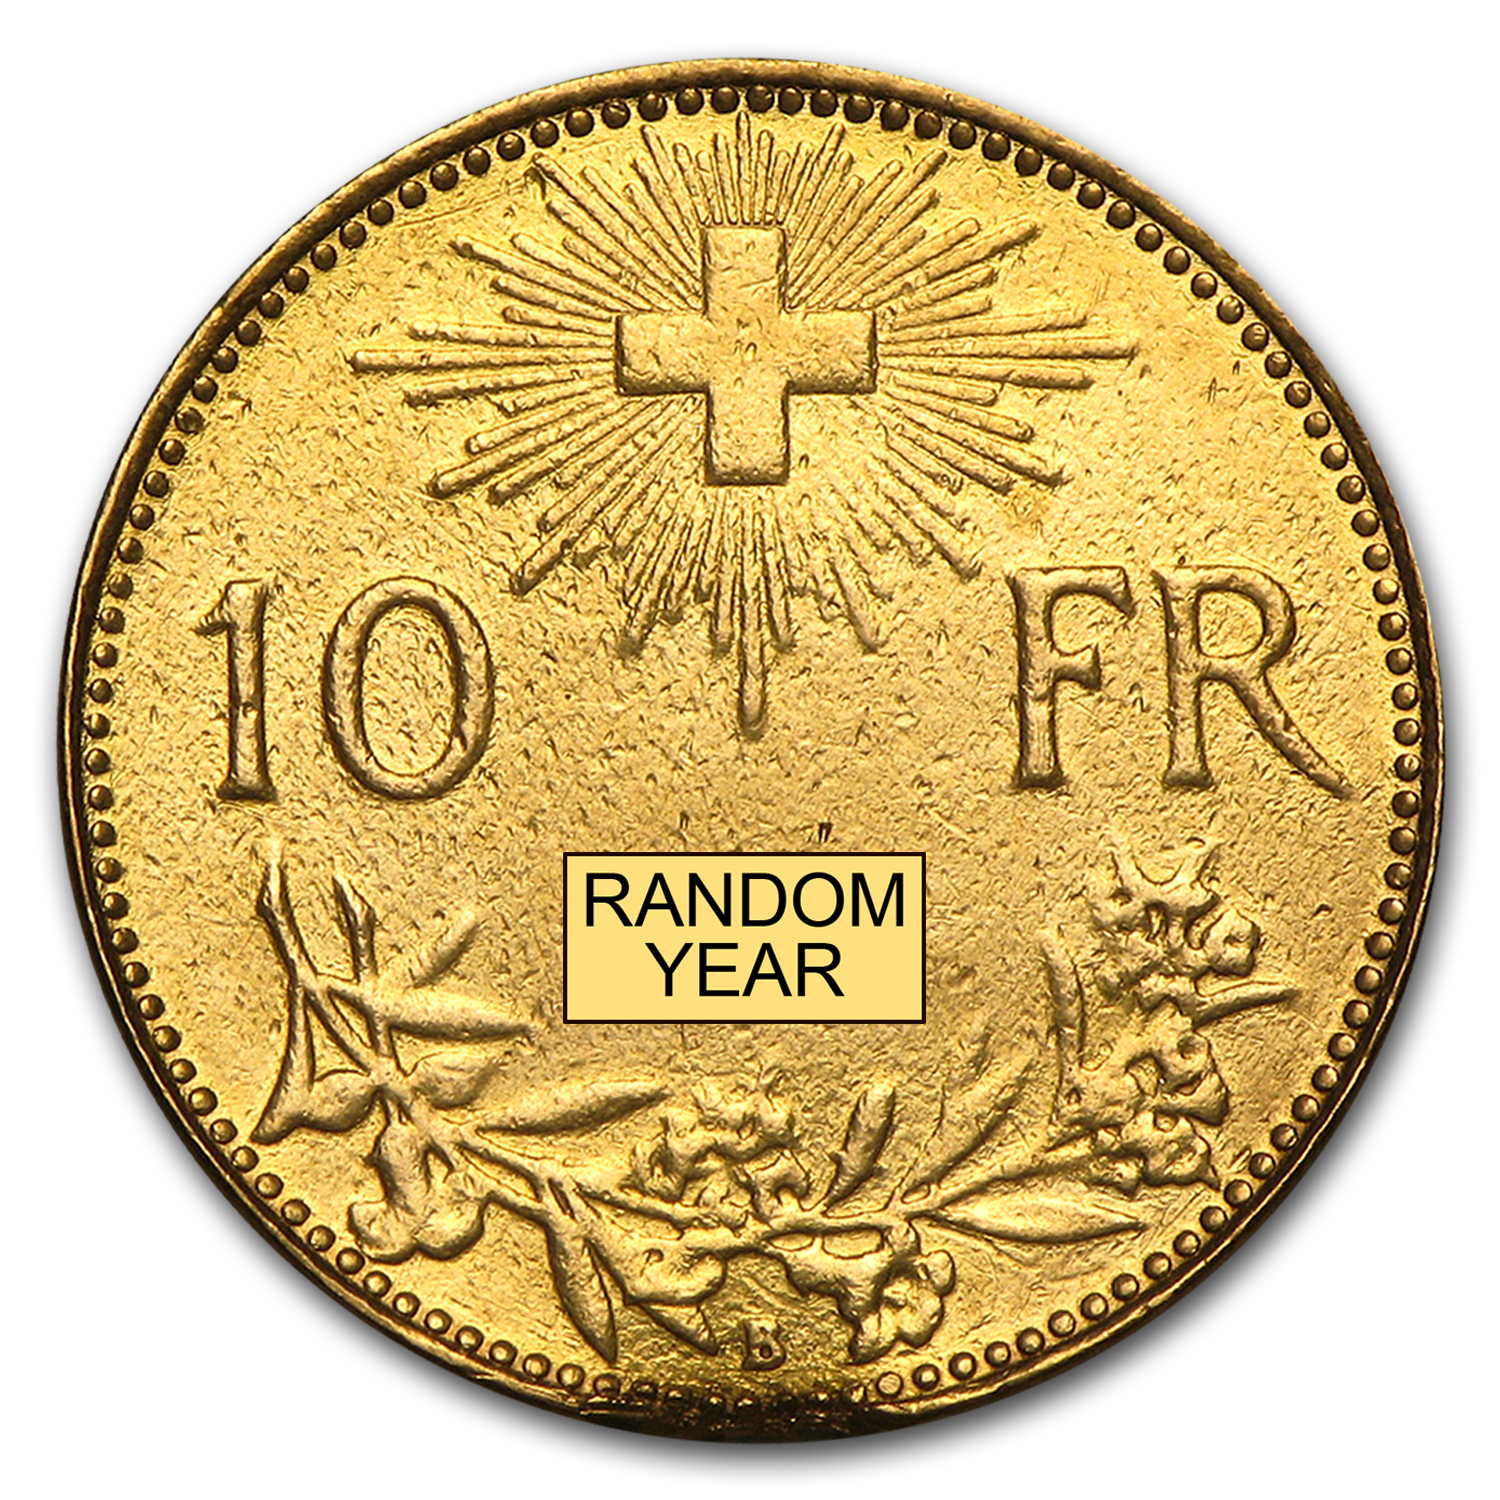 Switzerland 1911 - 1922 10 Francs Gold Average Circulated